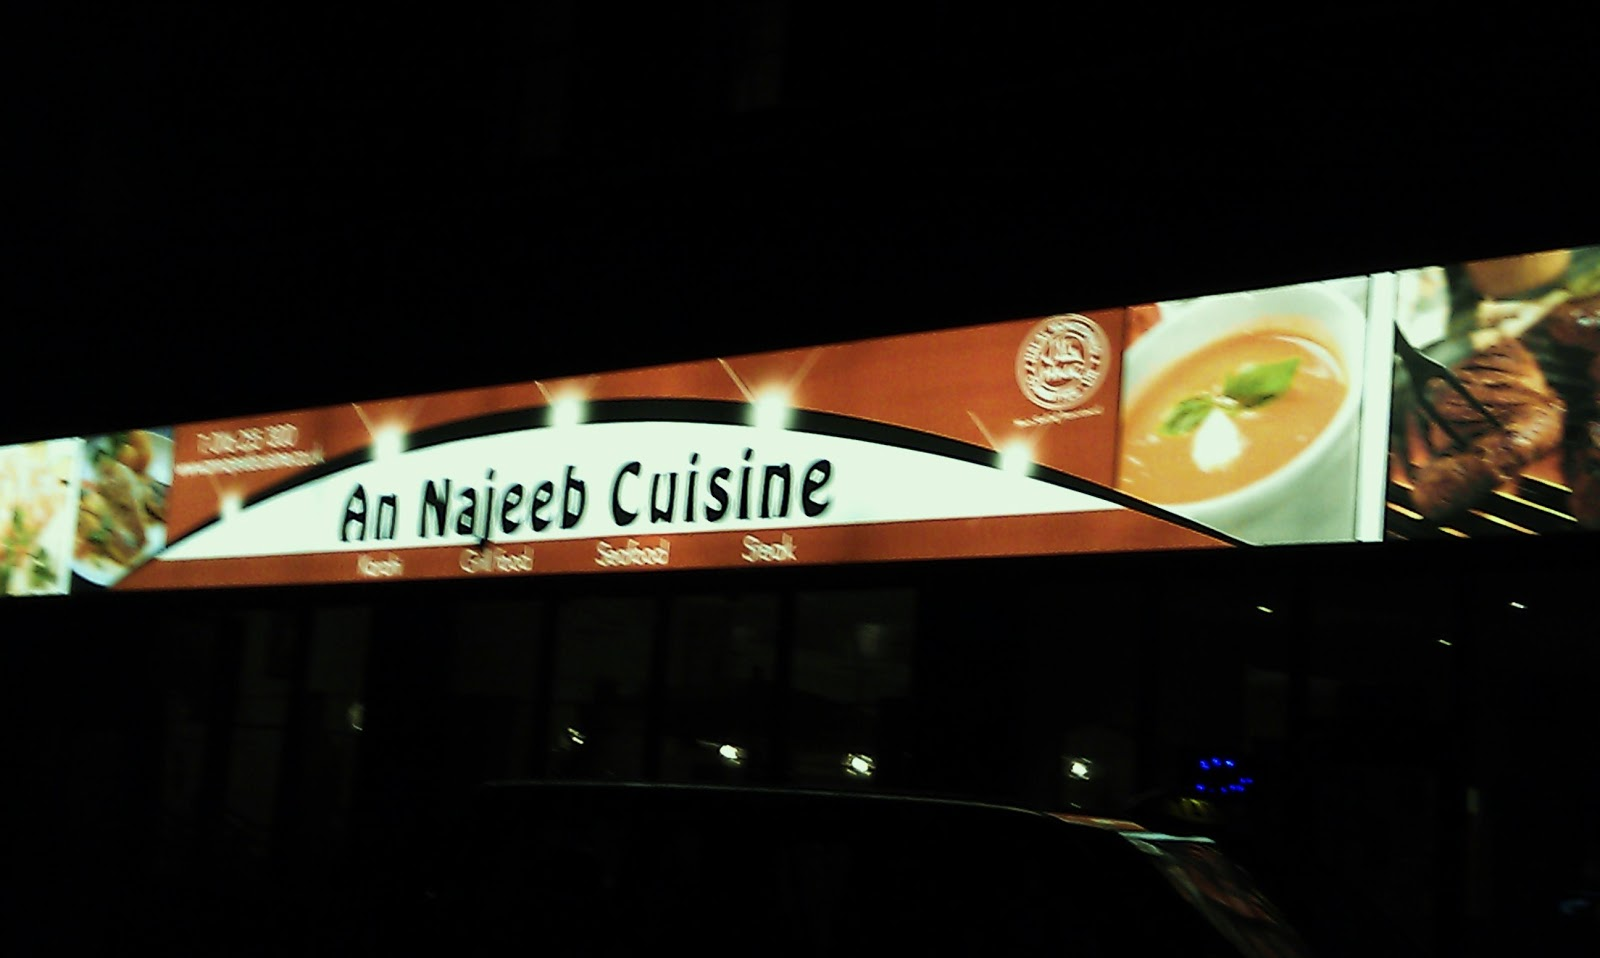 Muslimah 39 s kitchen restaurant review an najeeb cuisine for An najeeb cuisine leicester